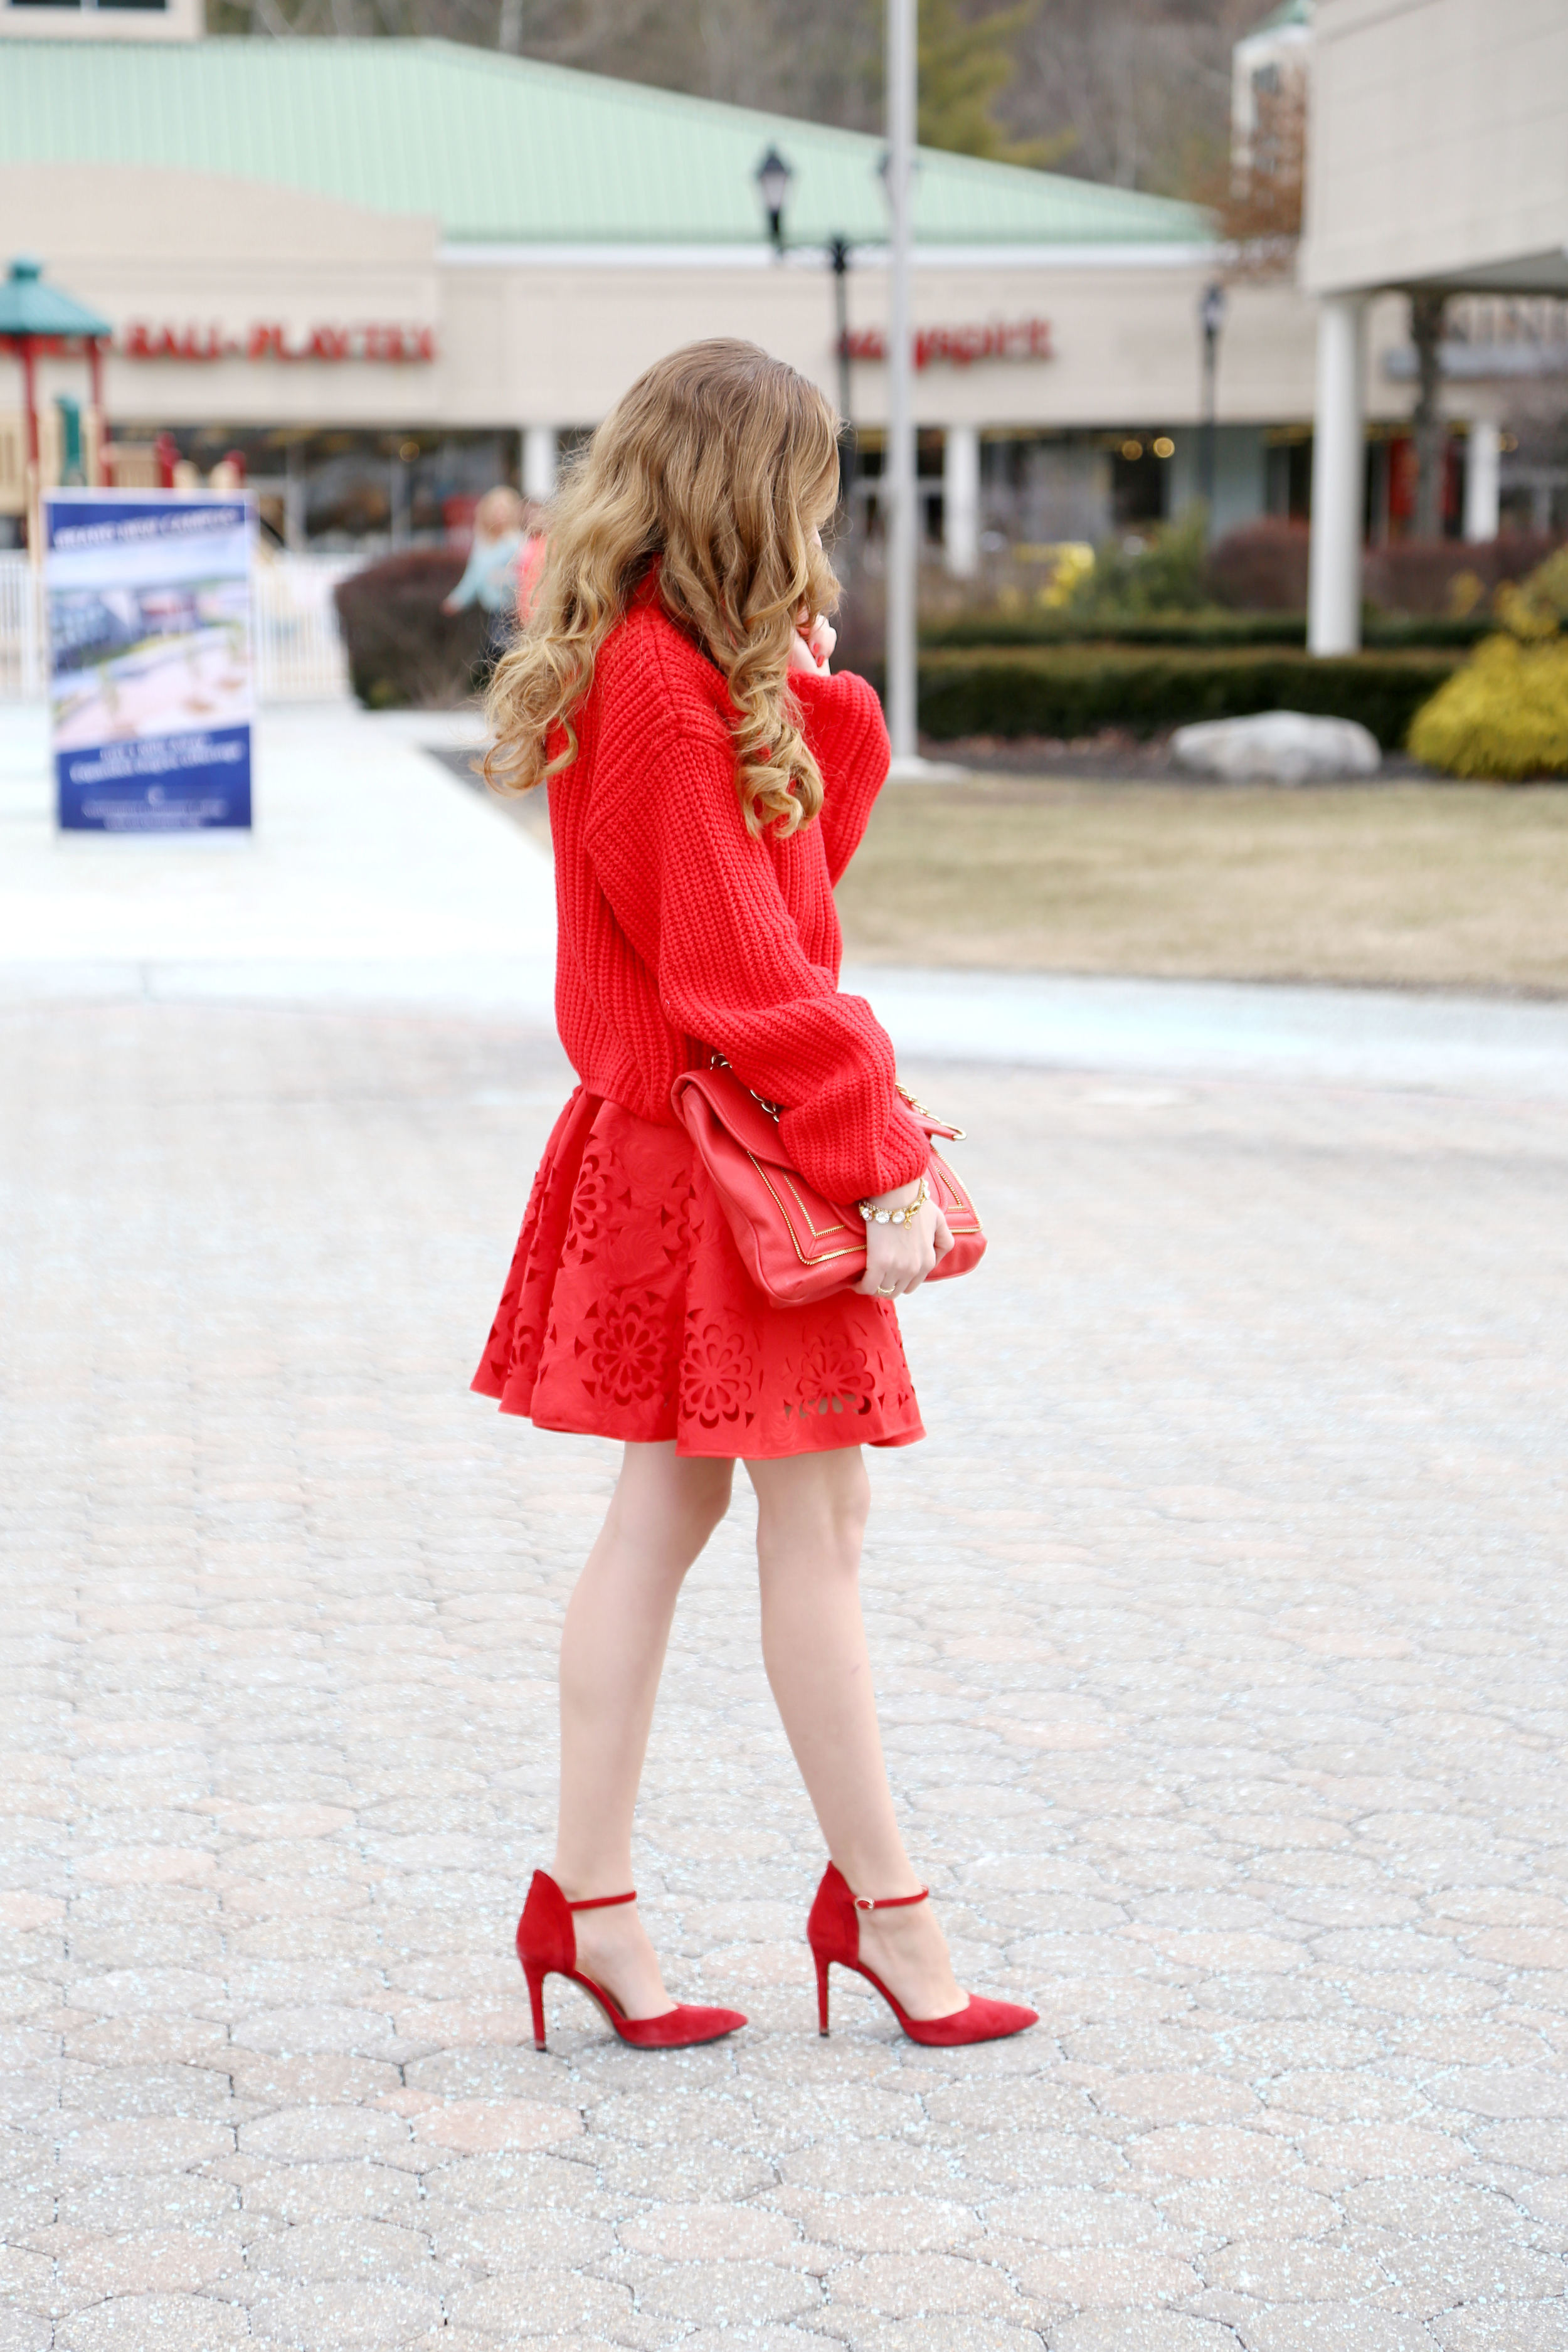 The Lady In Red- Enchanting Elegance